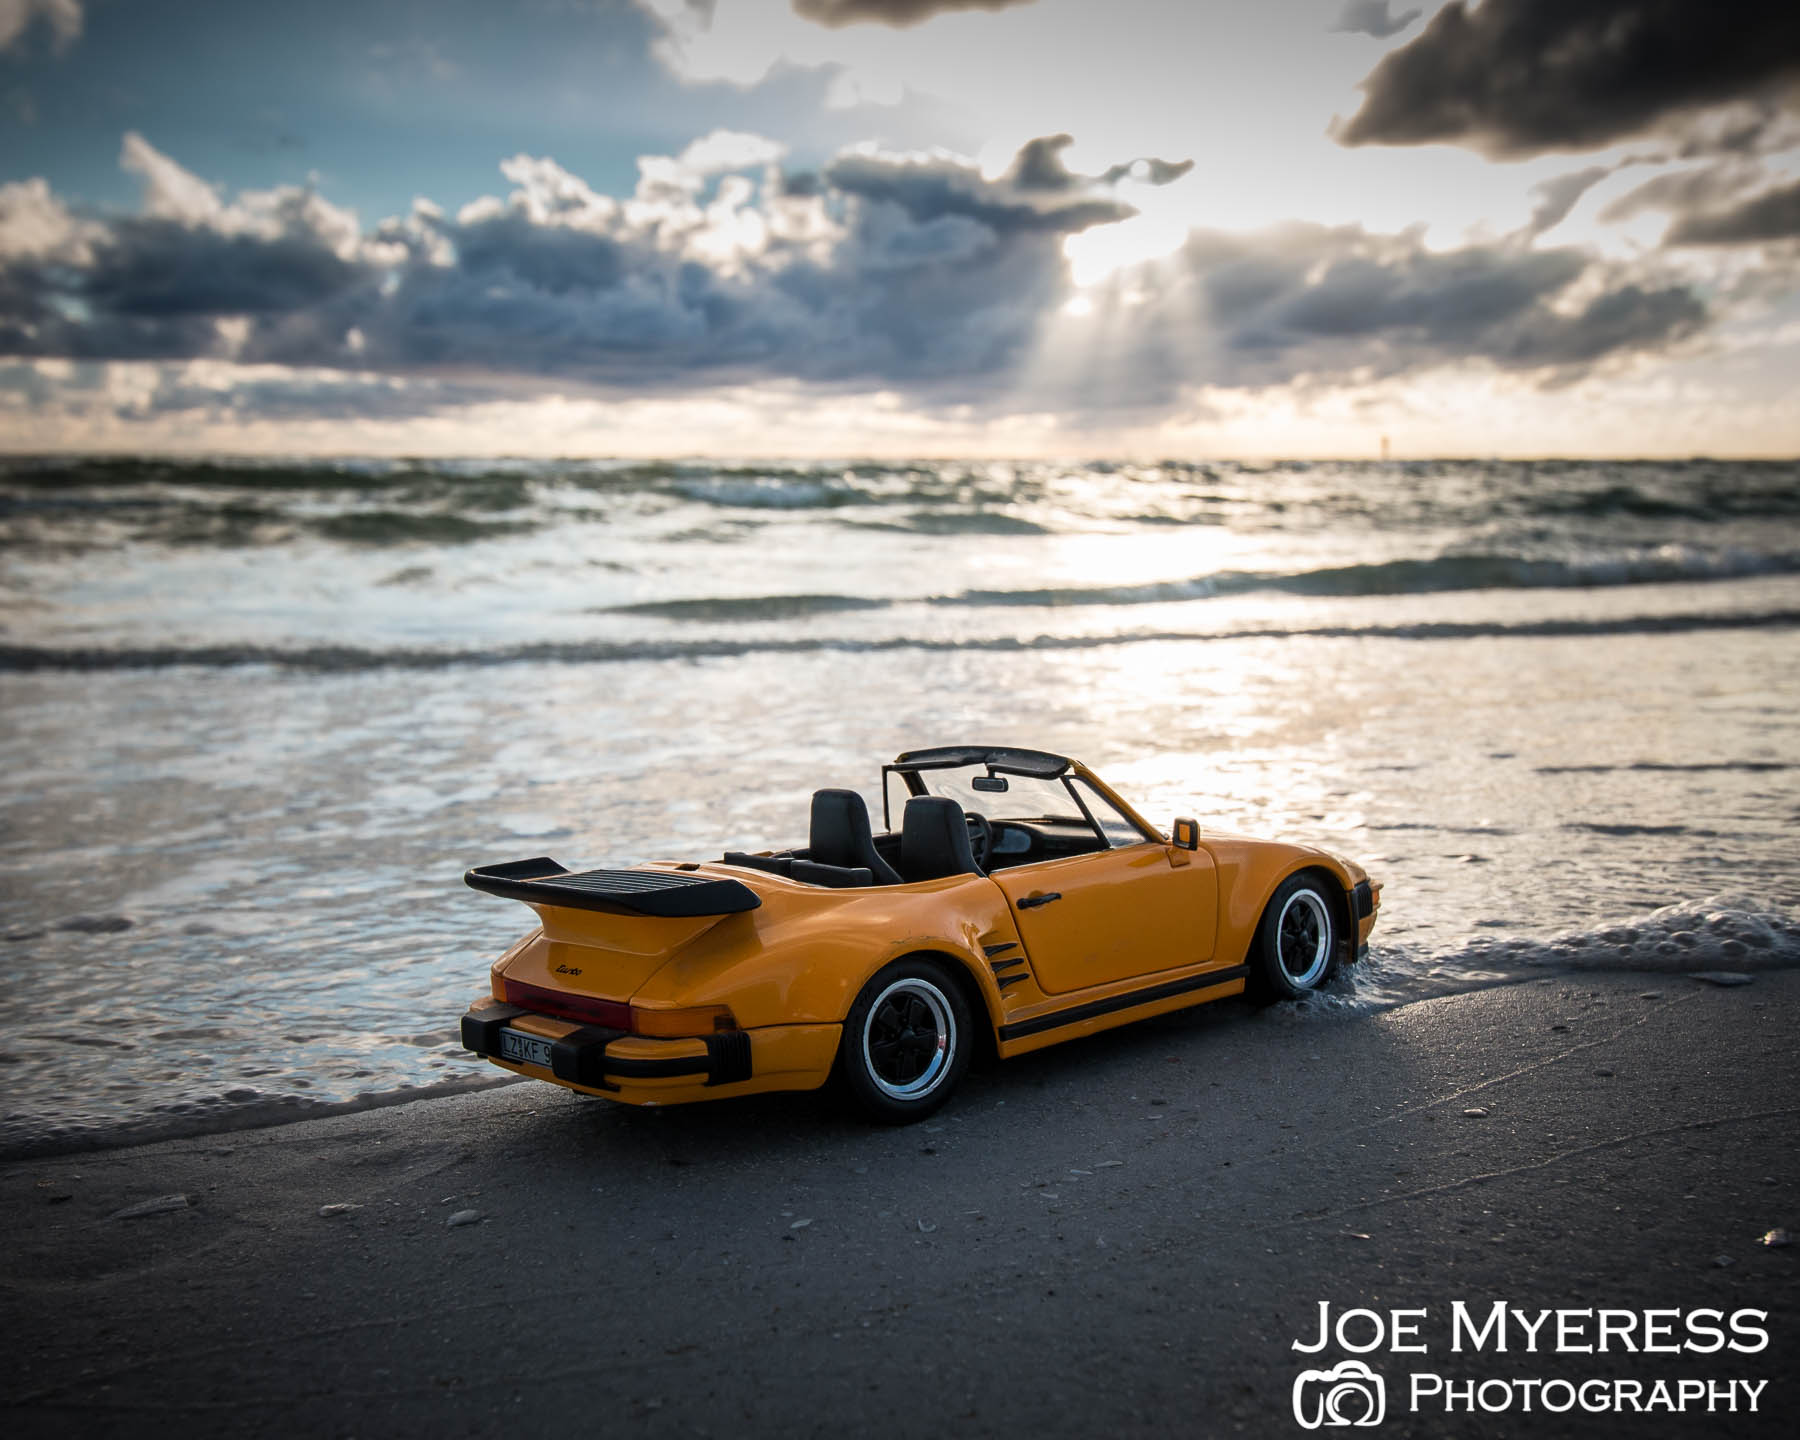 Car on beach